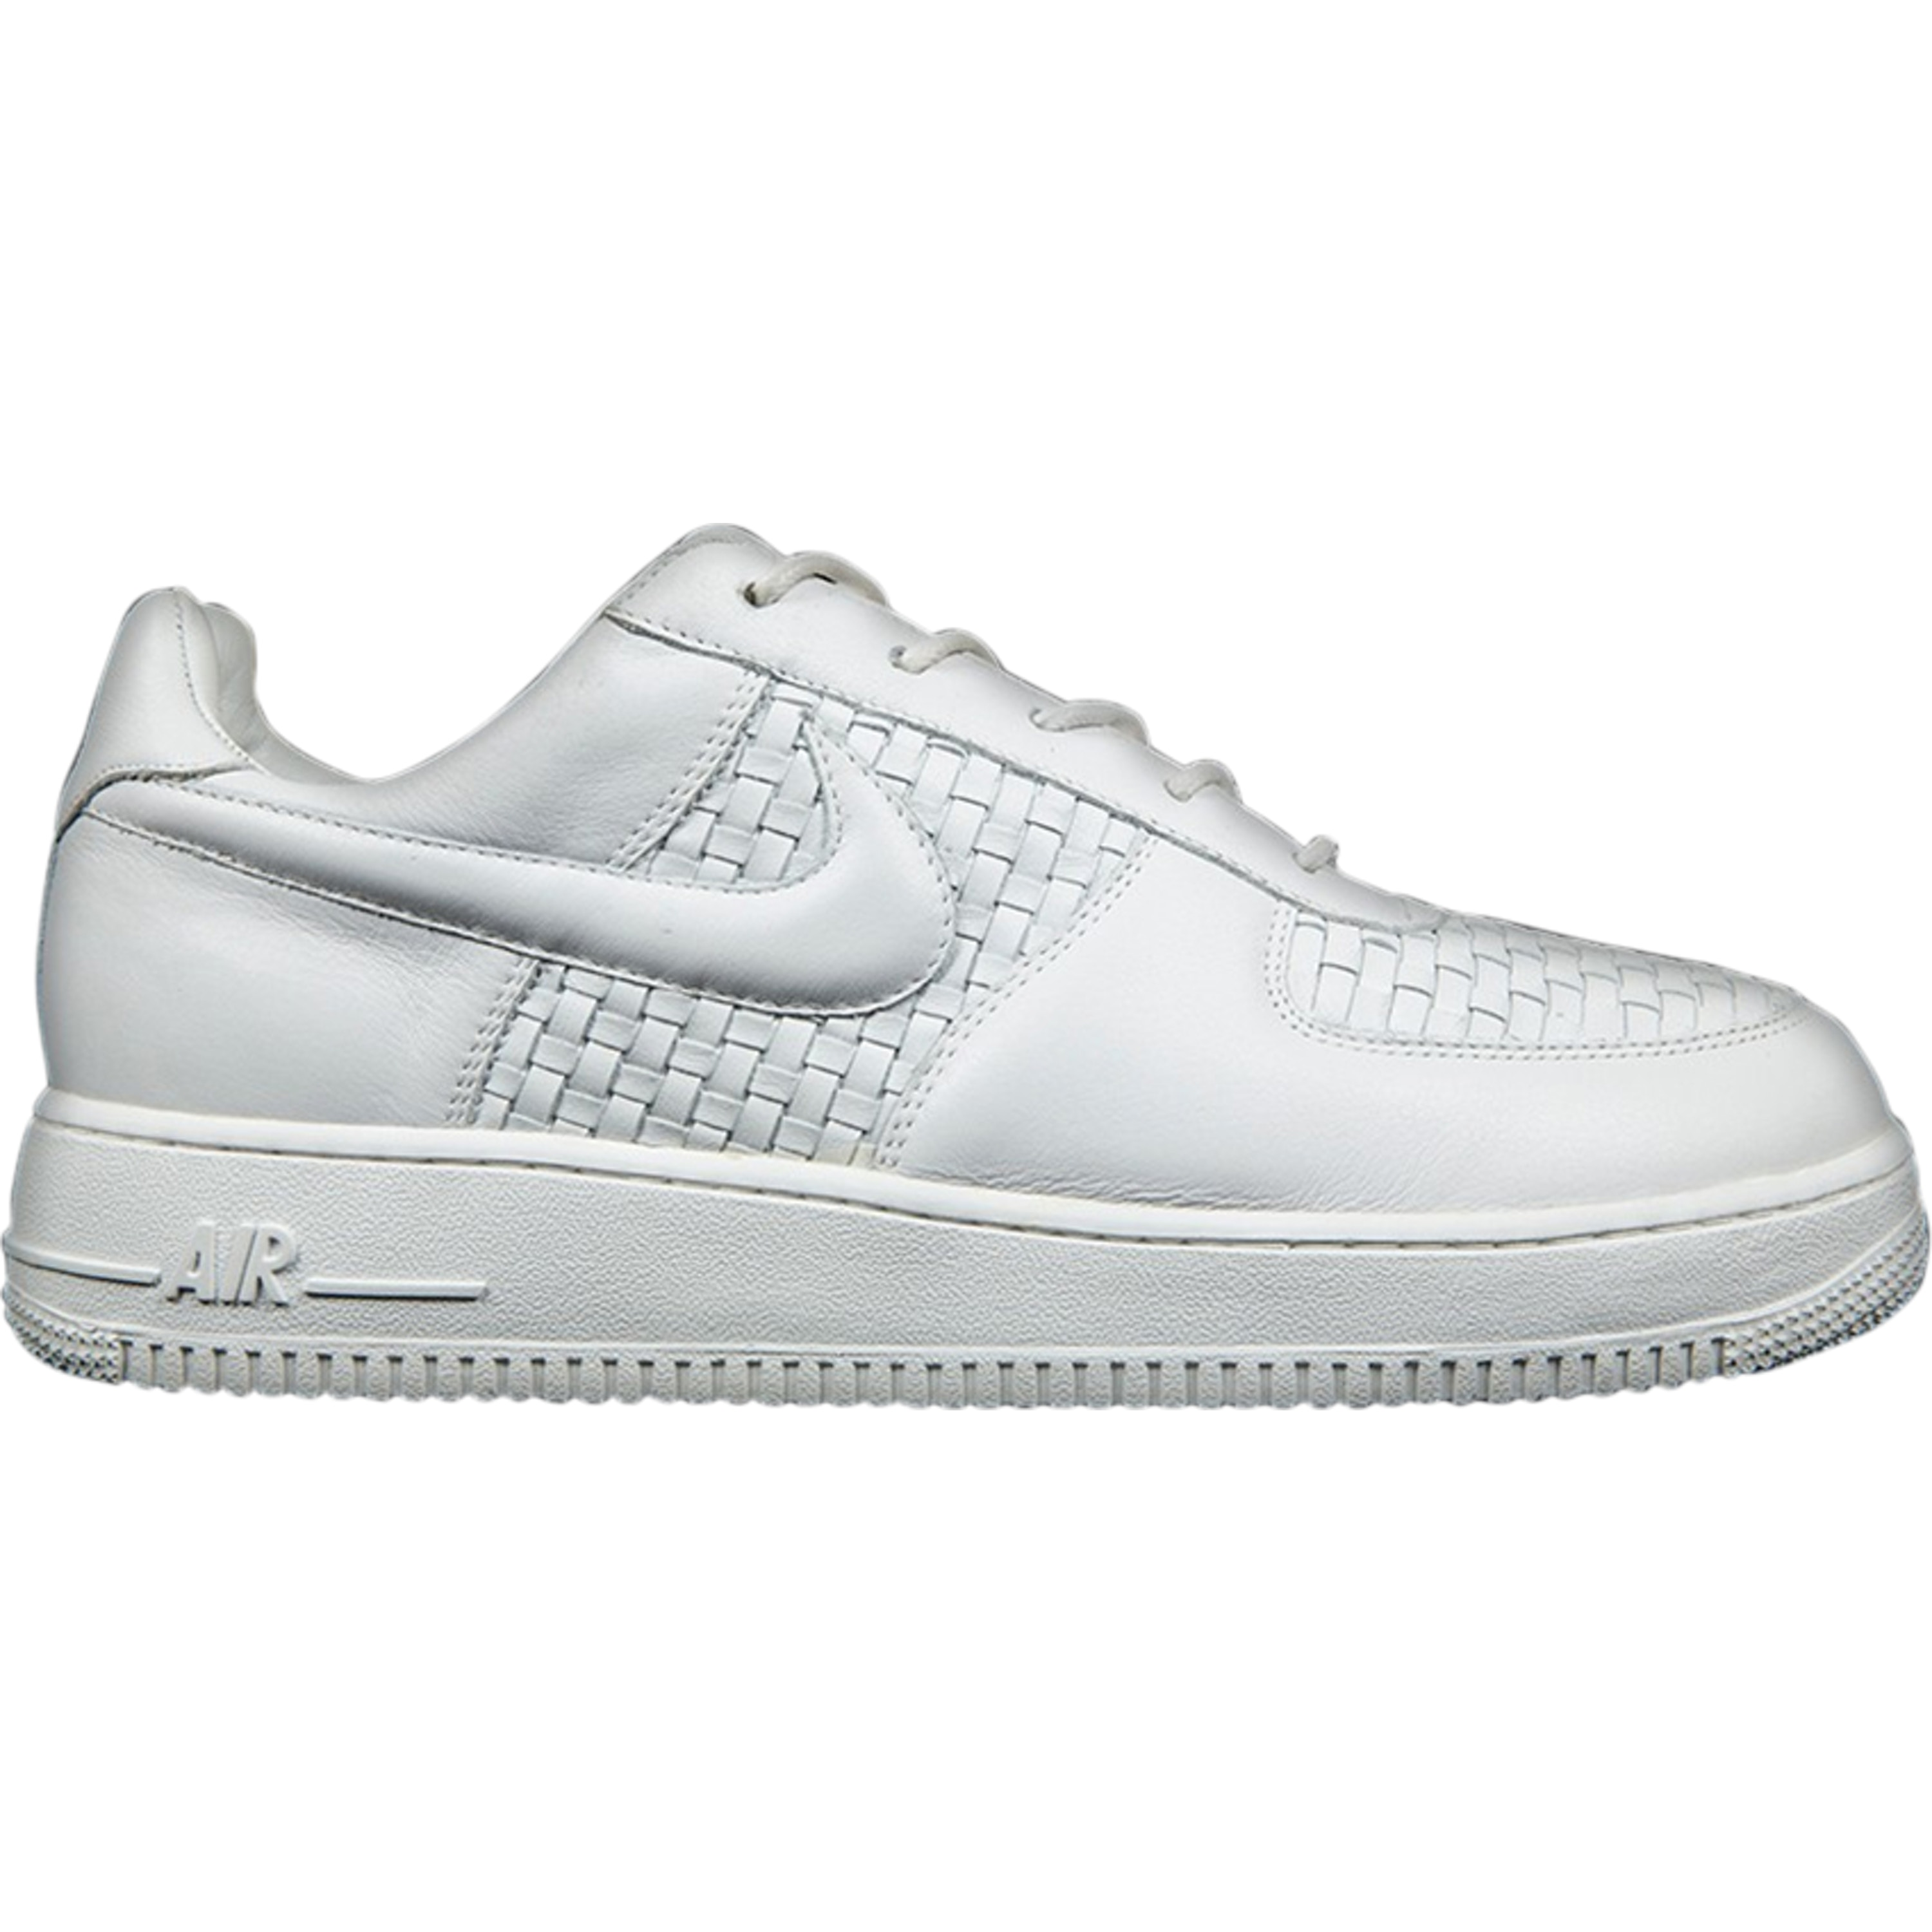 Nike Air Force 1 Low Lux (309238-111)